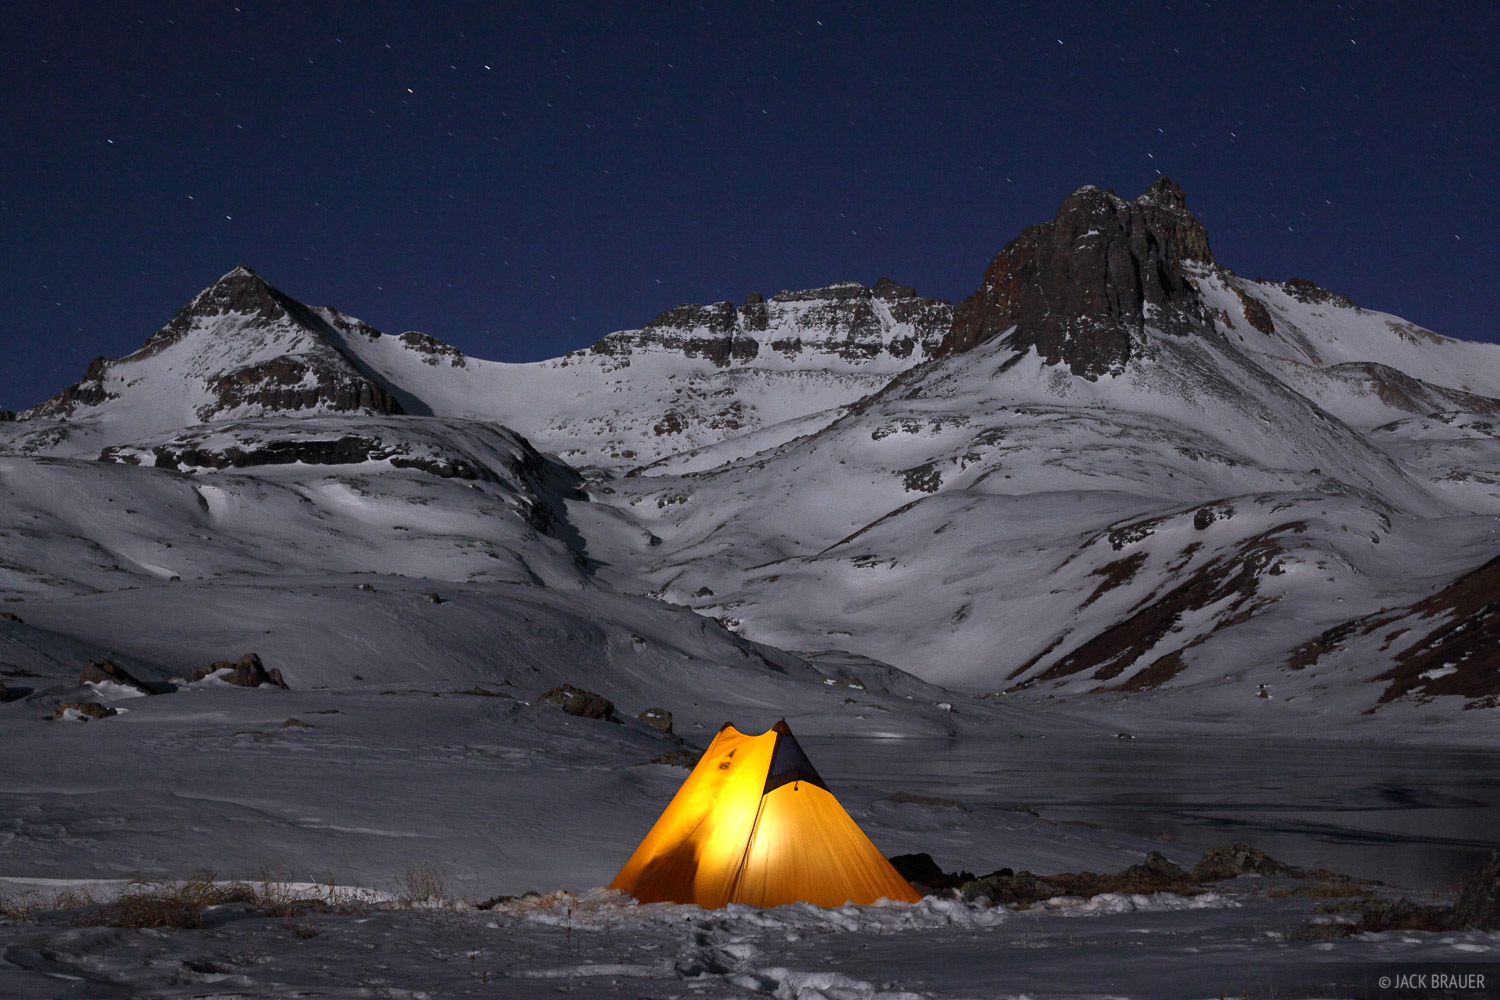 Winter camping at Ice Lakes.